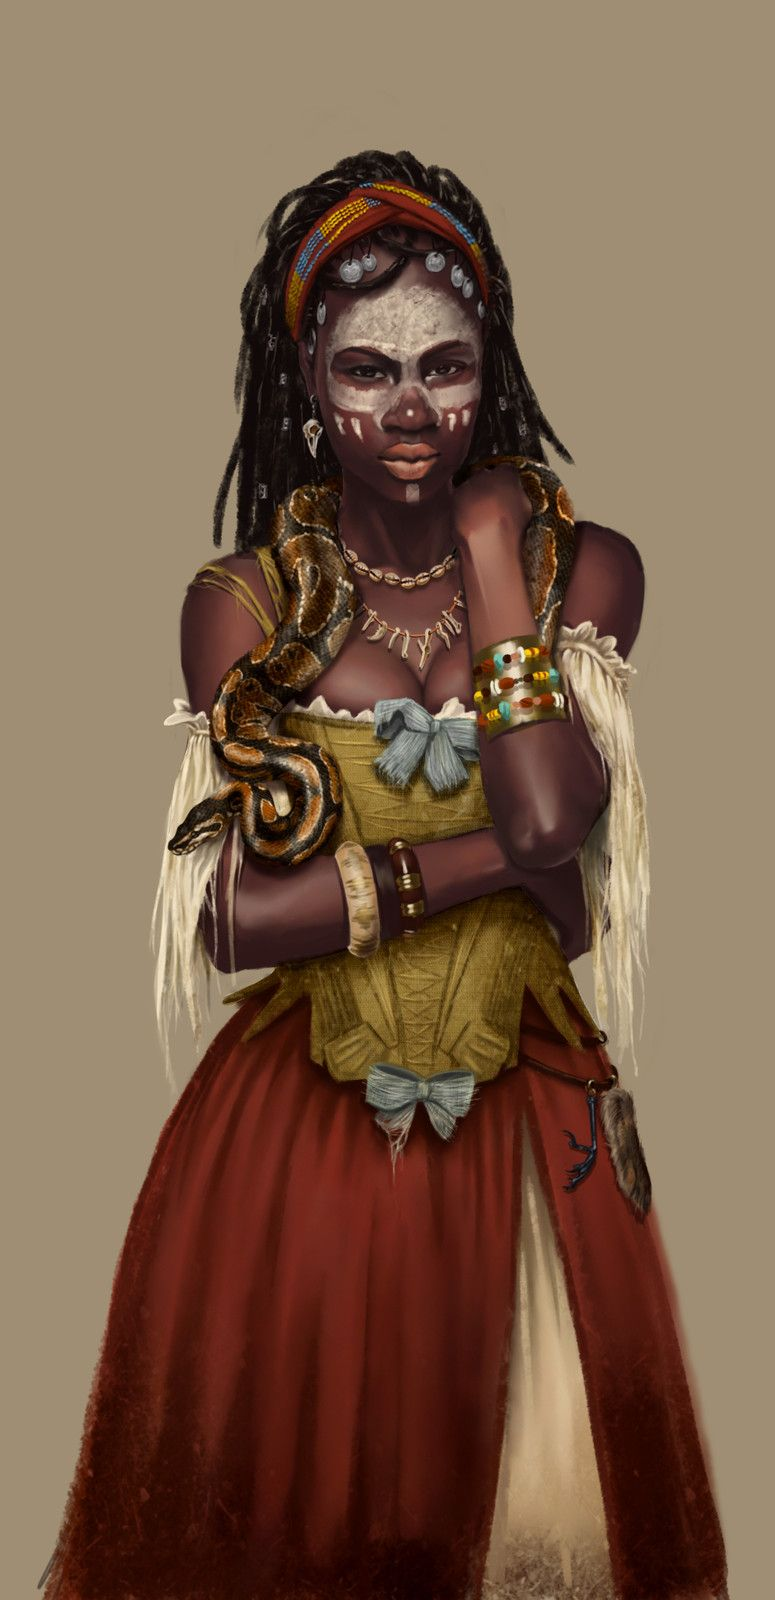 Pirate Voodoo queen Orma, Anne-Lise Loubière on ArtStation at https://www.artstation.com/artwork/EbDOv